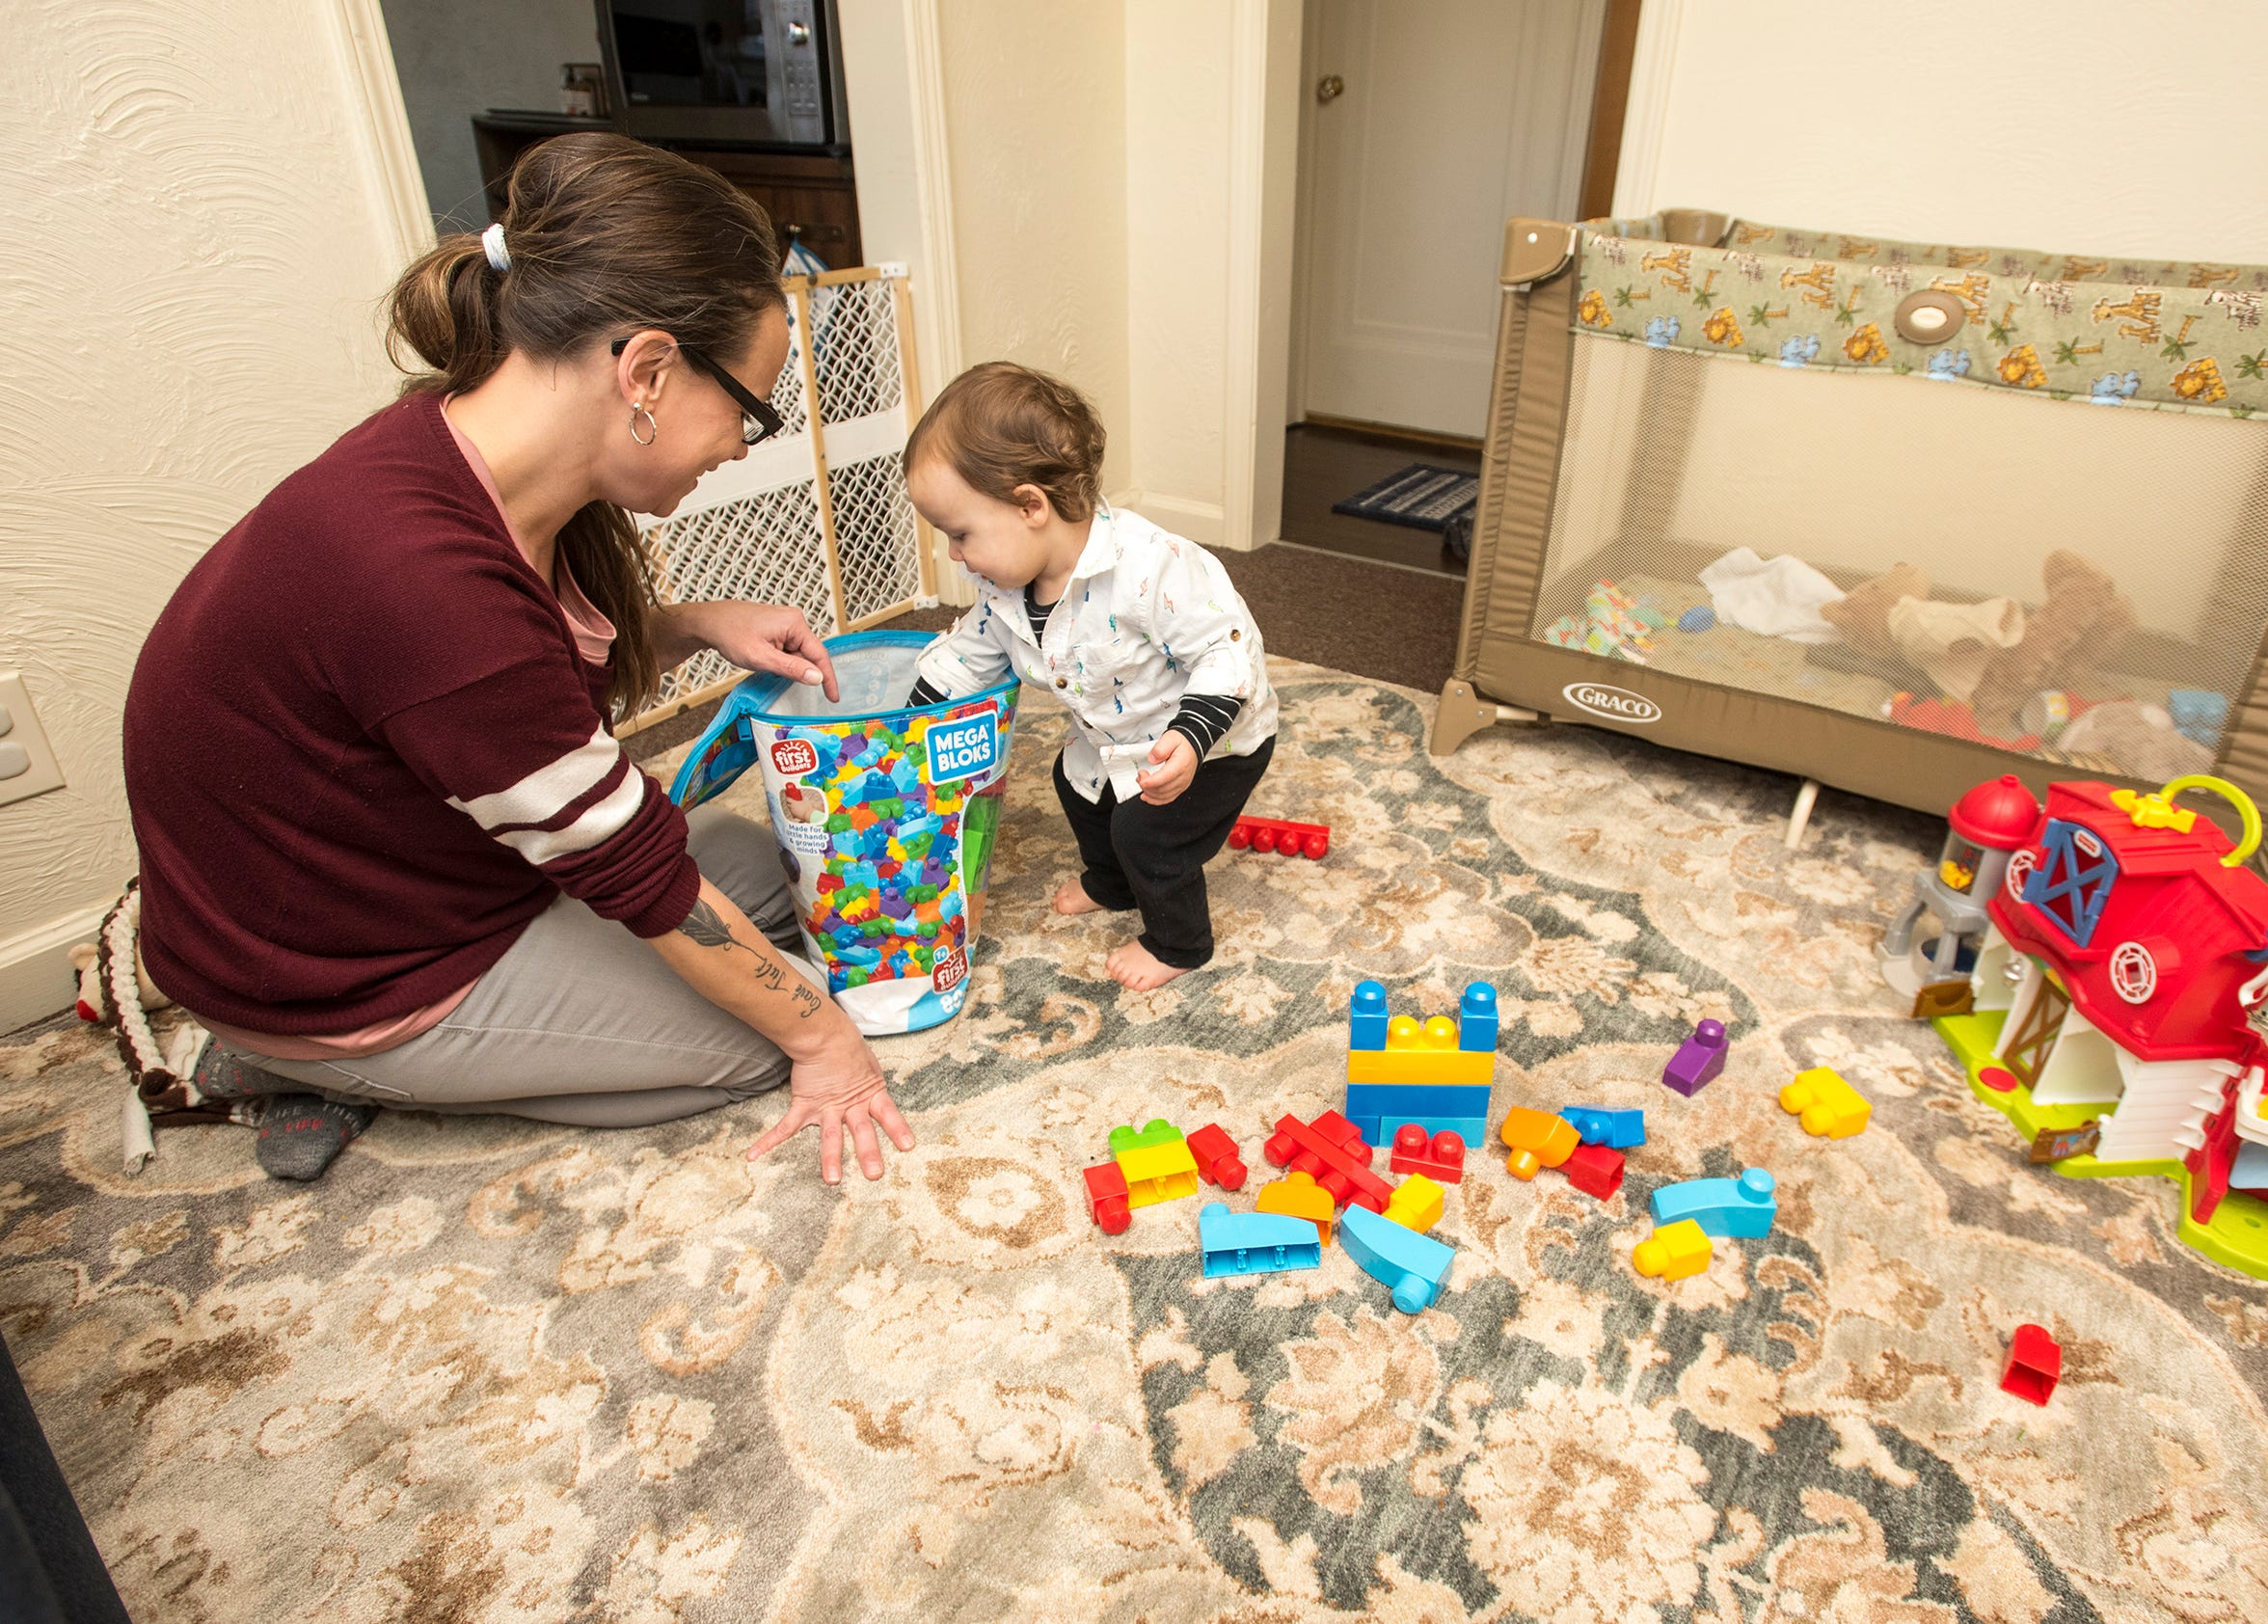 Aarin Leist plays with her 1-year-old son Ethan Wednesday, Jan. 16, 2019 at her home in Port Huron.